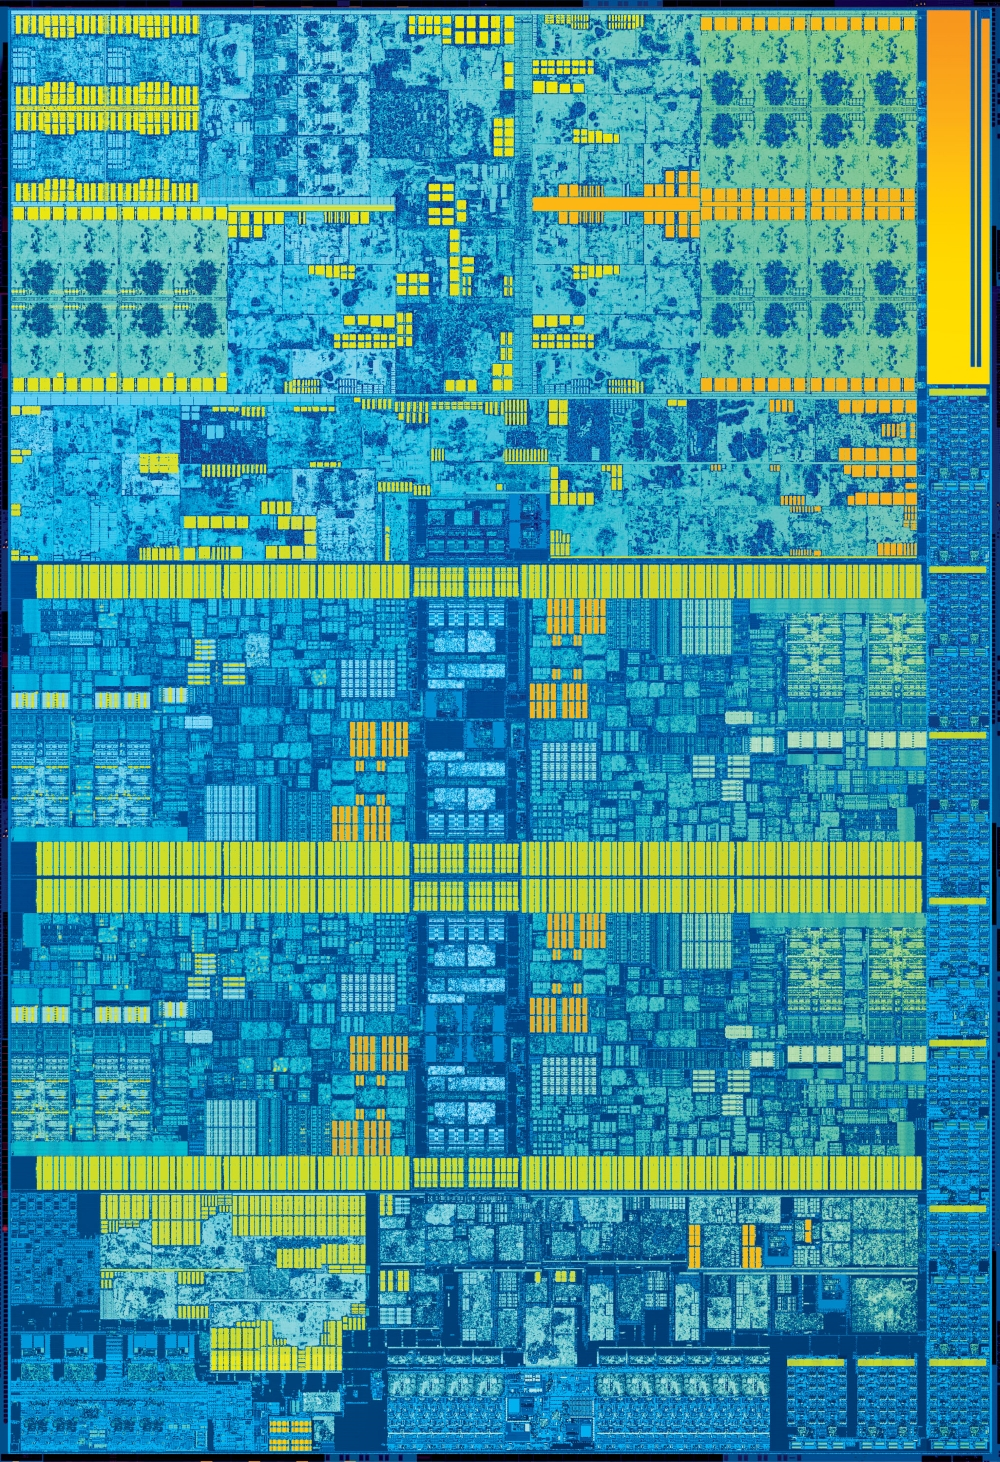 6th_Gen_Intel_Core_die_flat_1000.jpg